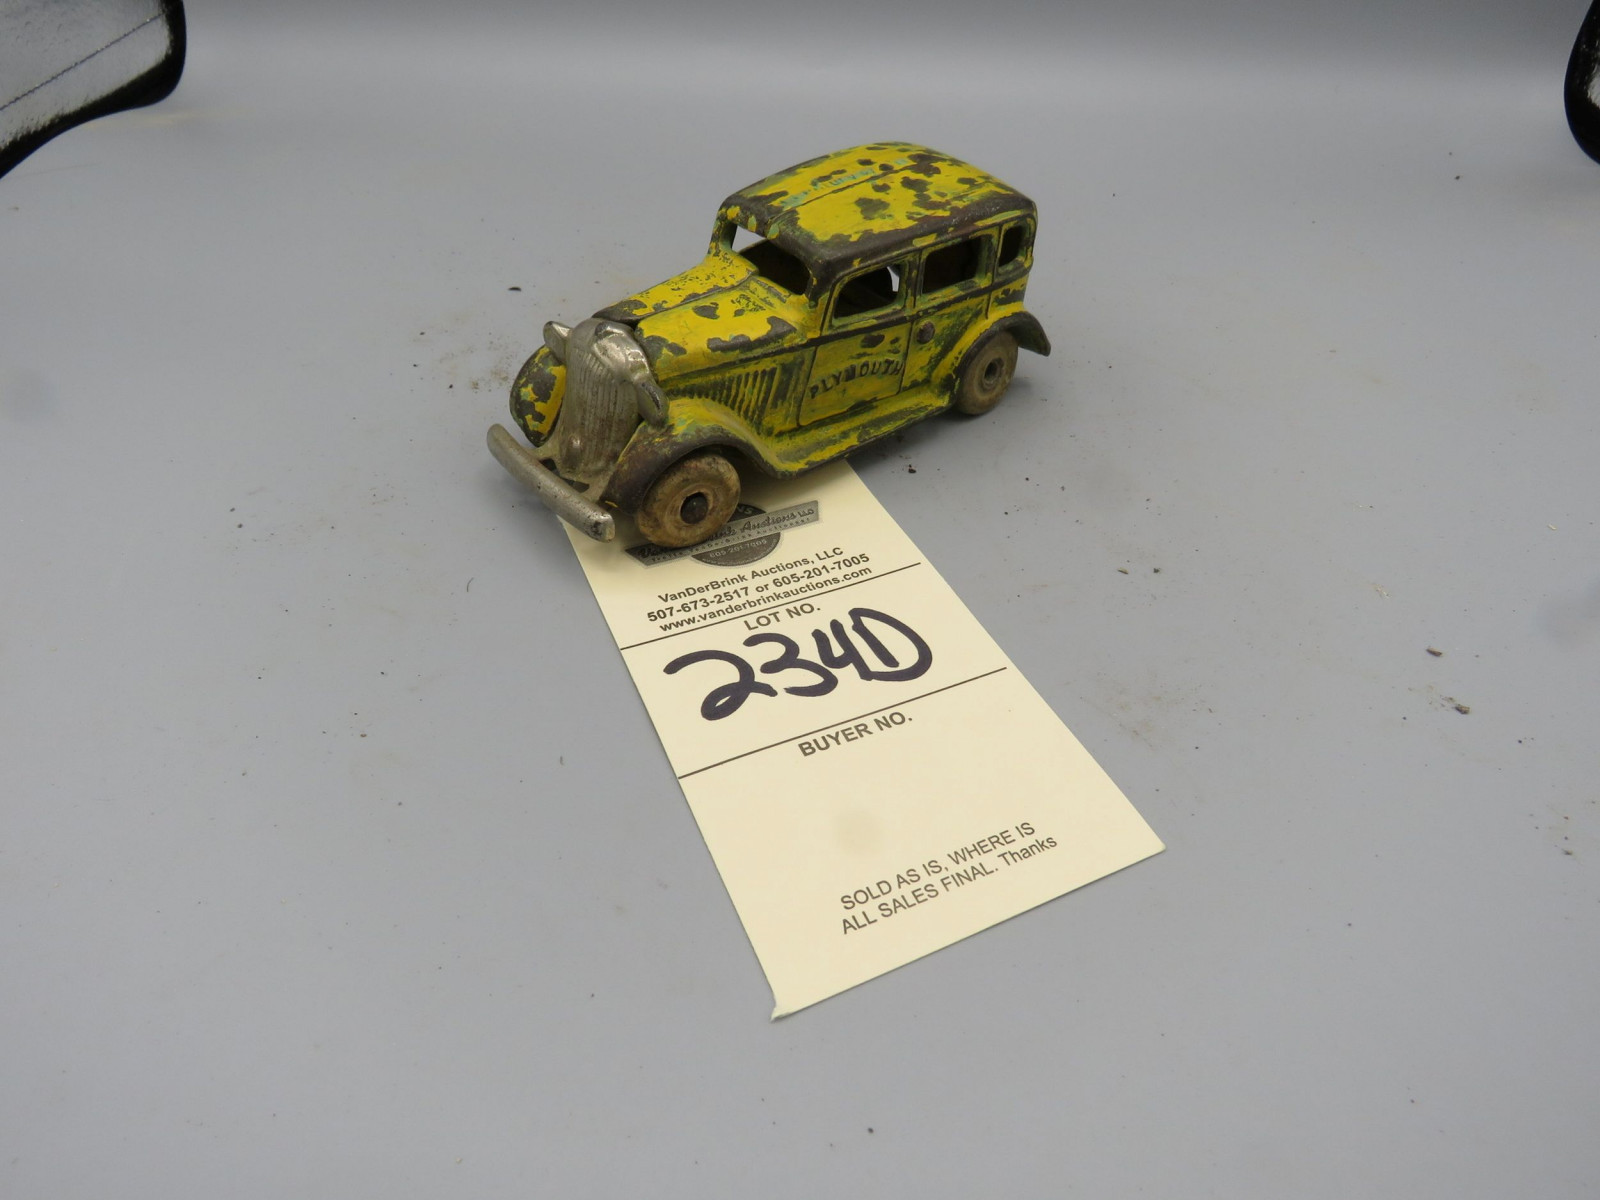 Vintage cast Iron Plymouth Sedan - Image 1